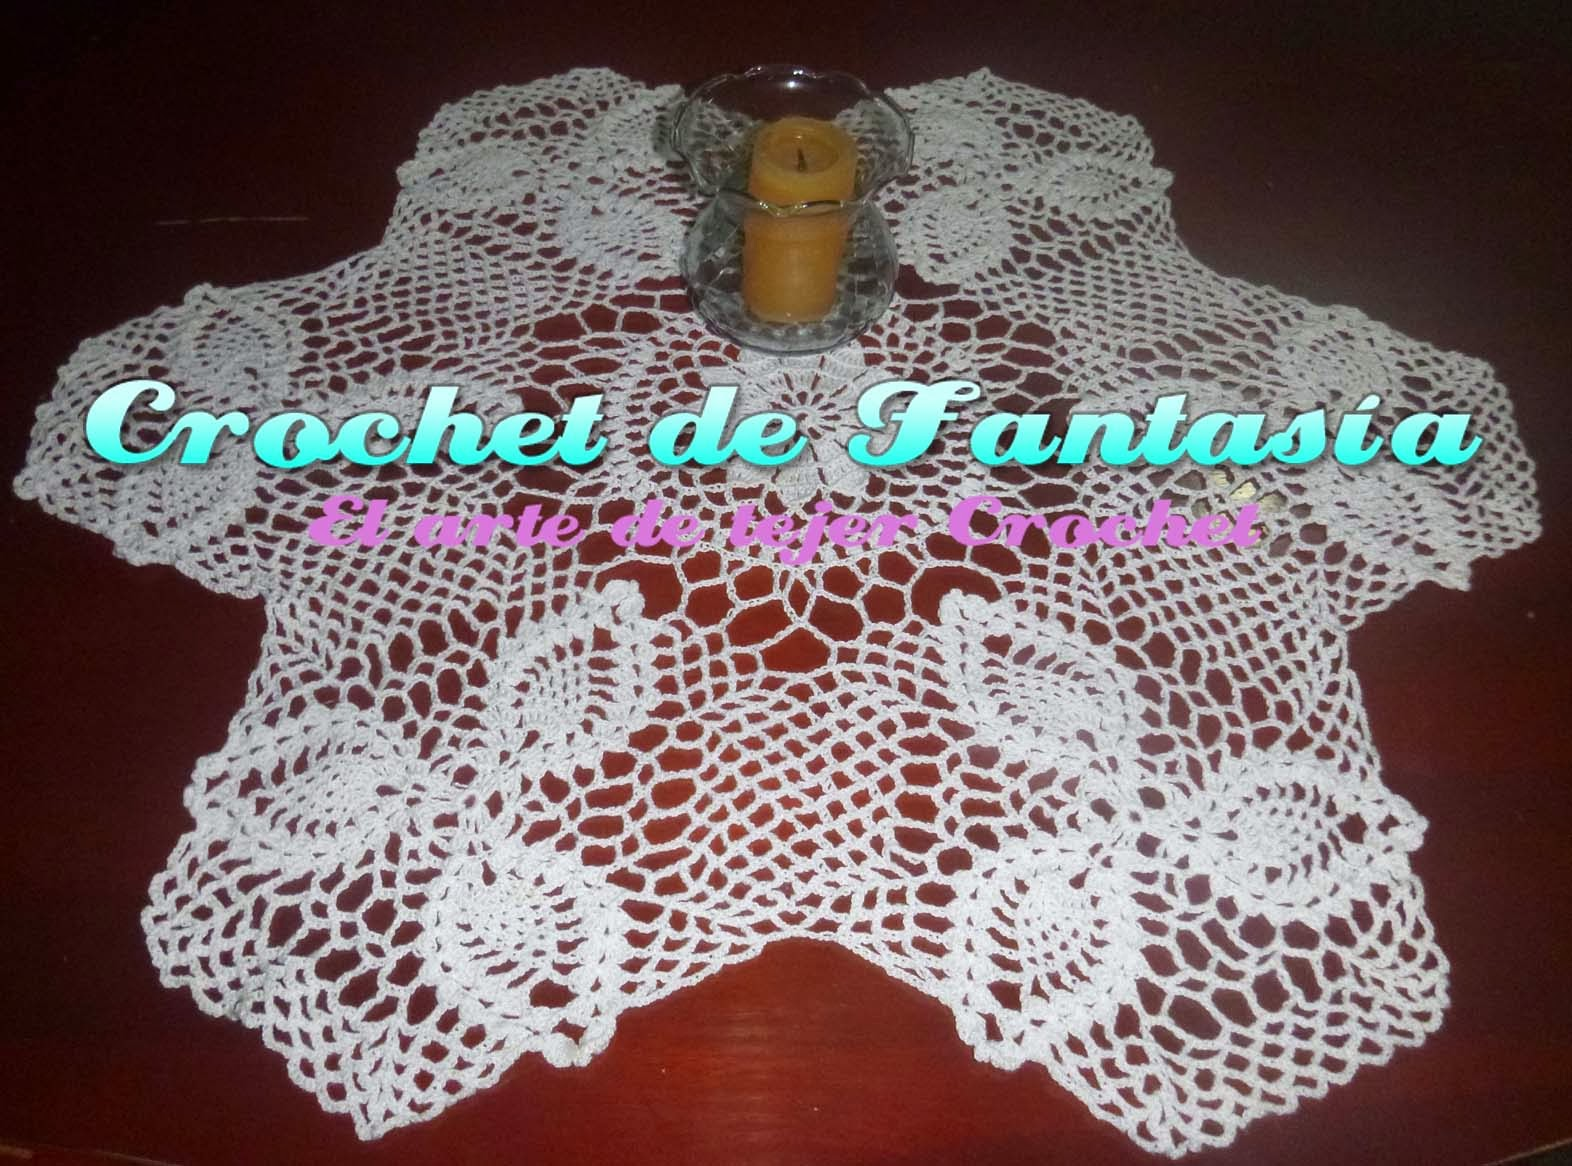 Crochet, ganchillo, mantel, carpeta, tejido, color blanco.